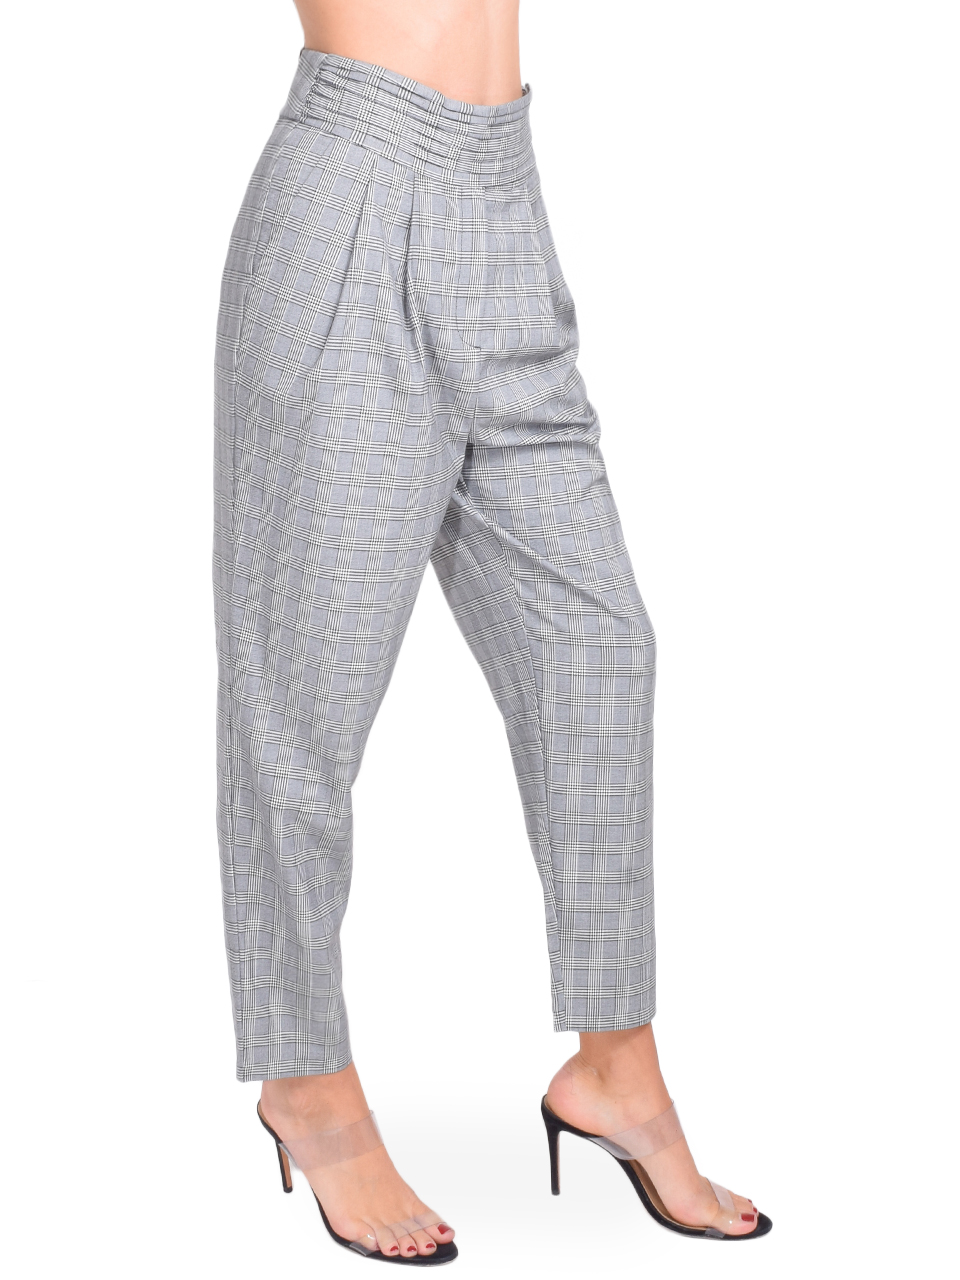 CINQ A SEPT Serenity Pant in Houndstooth Plaid Side View